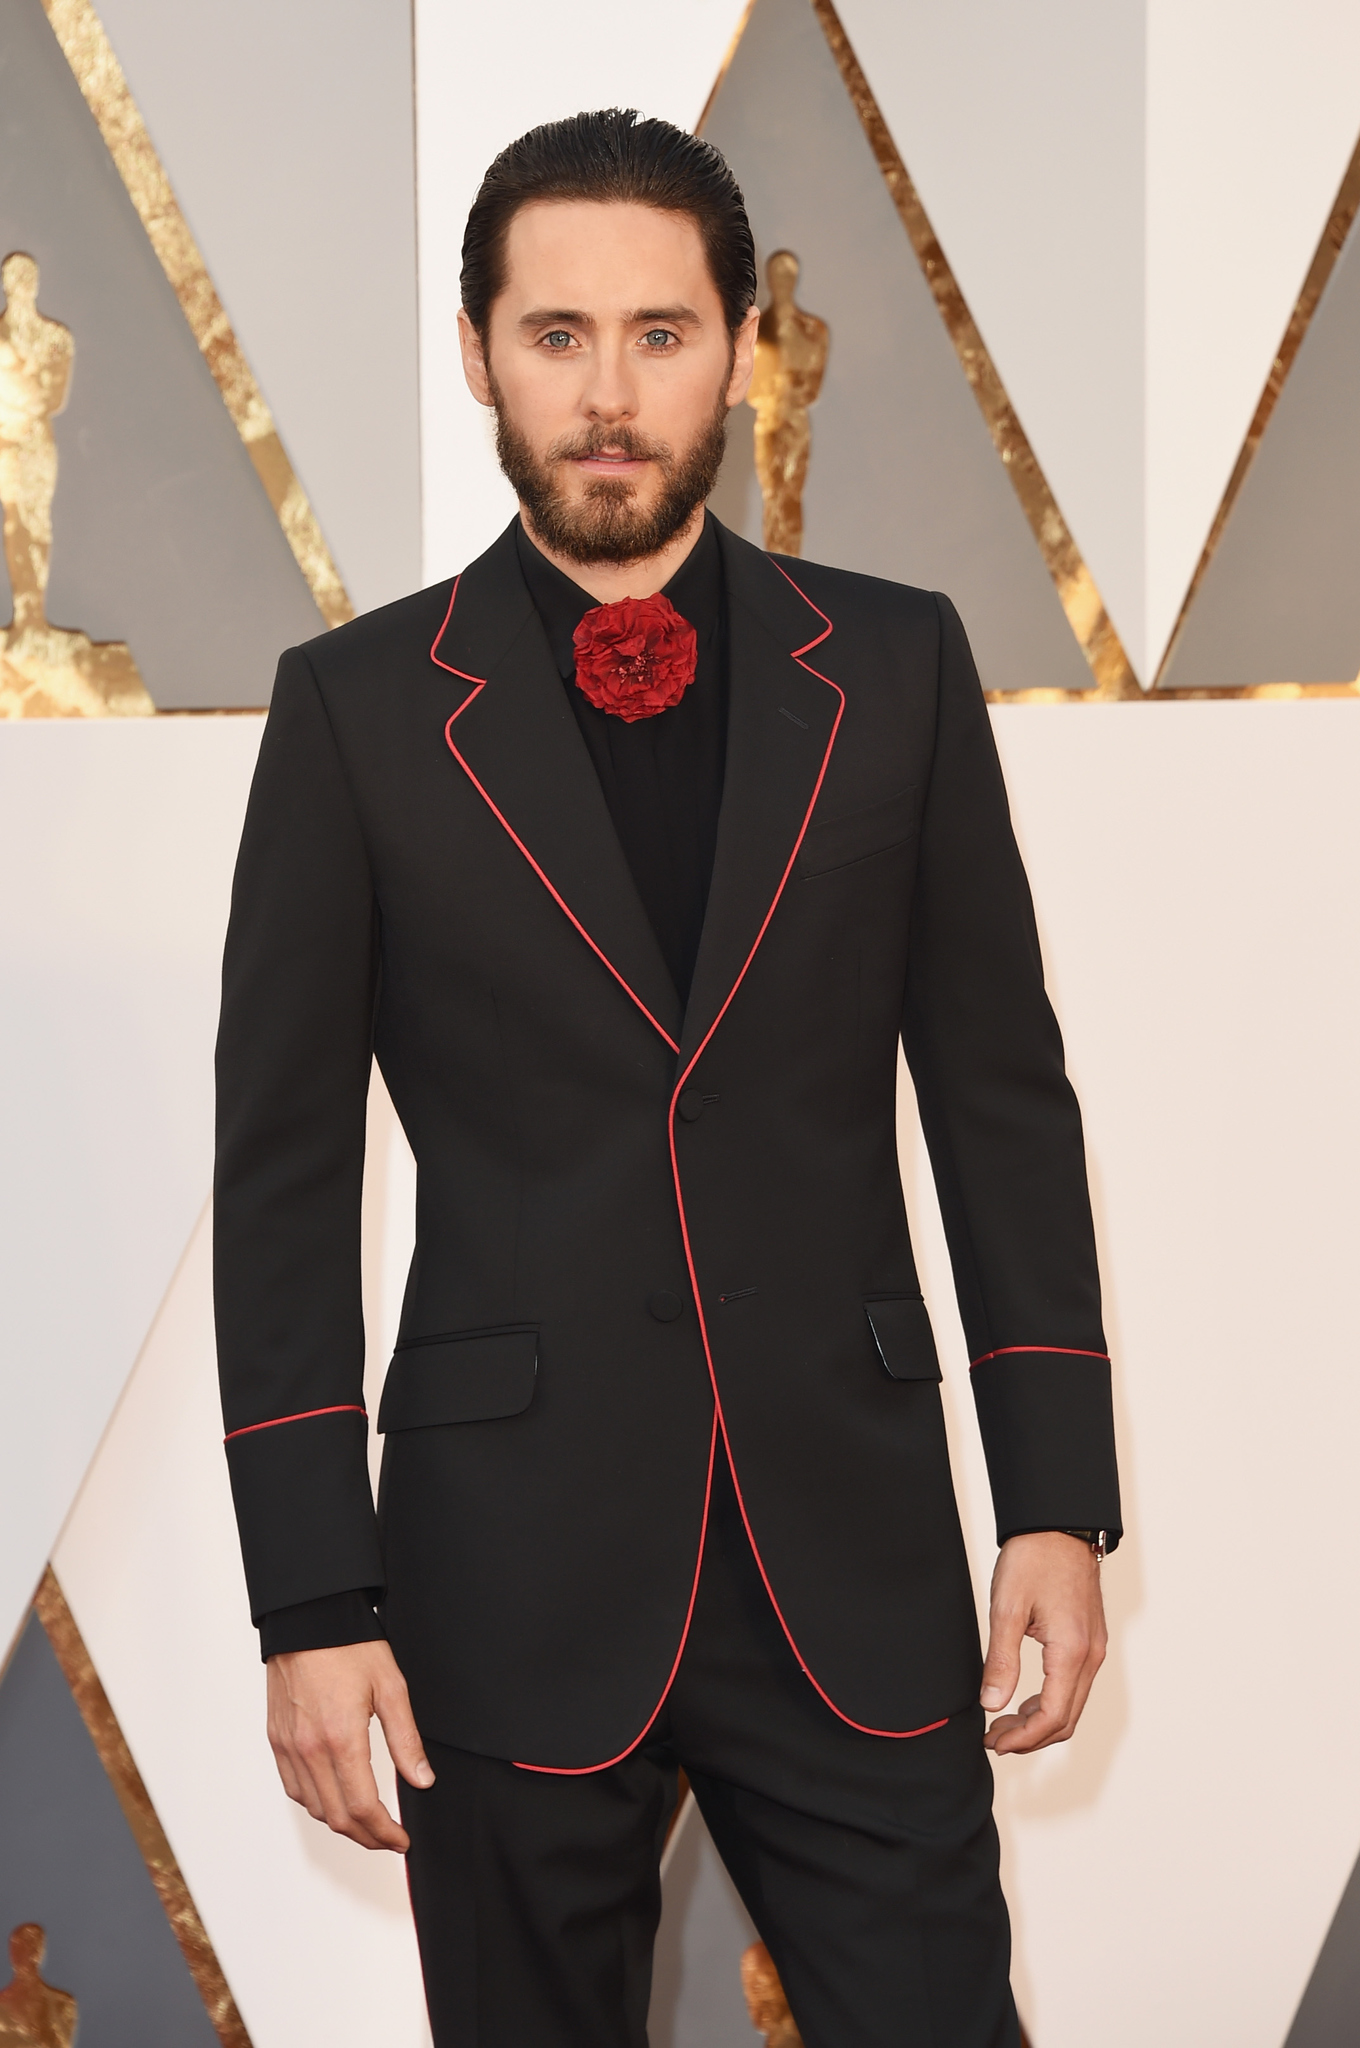 Jared Leto at an event for The Oscars (2016)